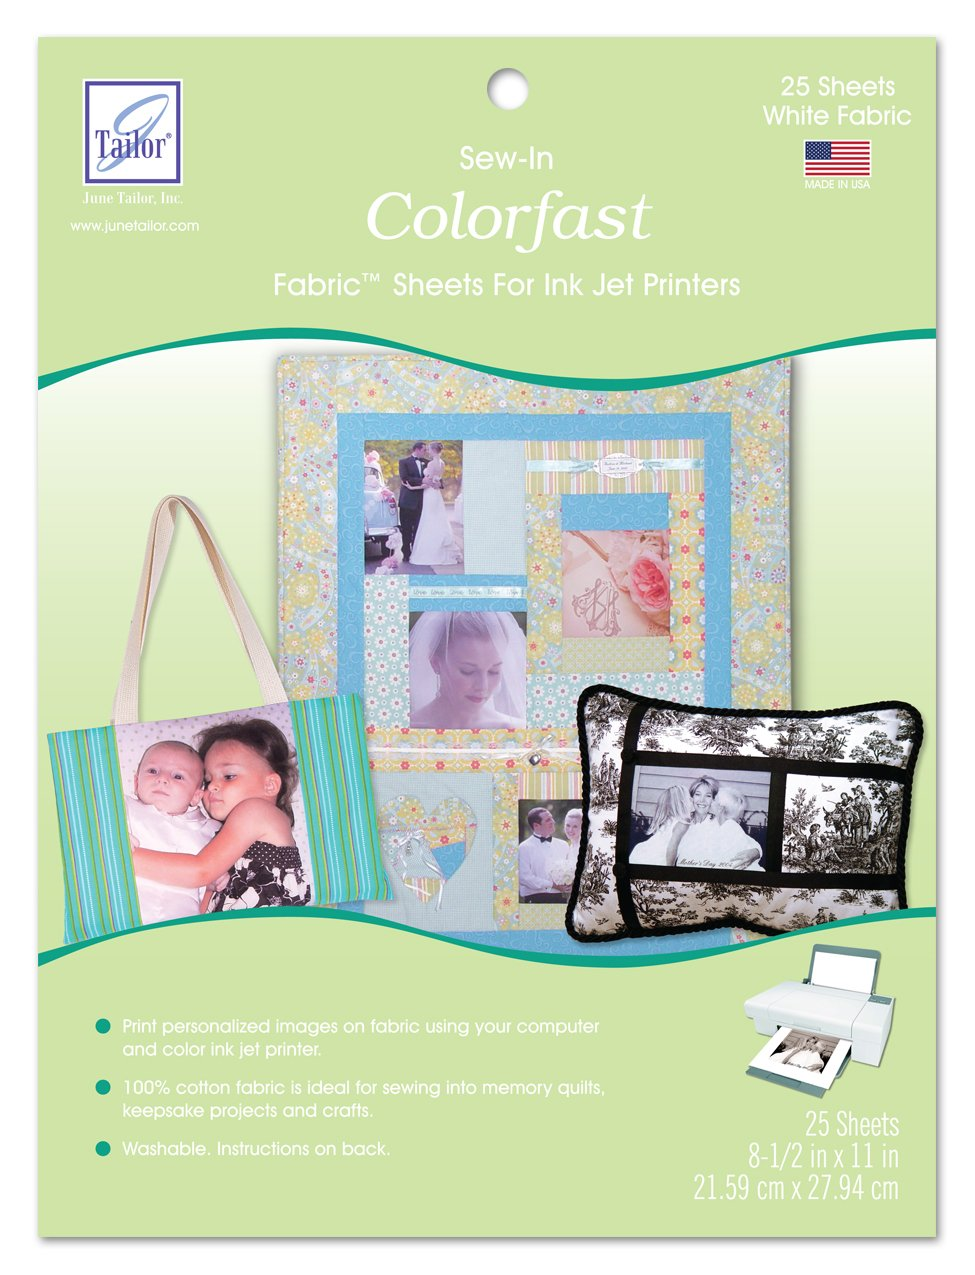 June Tailor Sew-in Colorfast Fabric Sheets by June Tailor